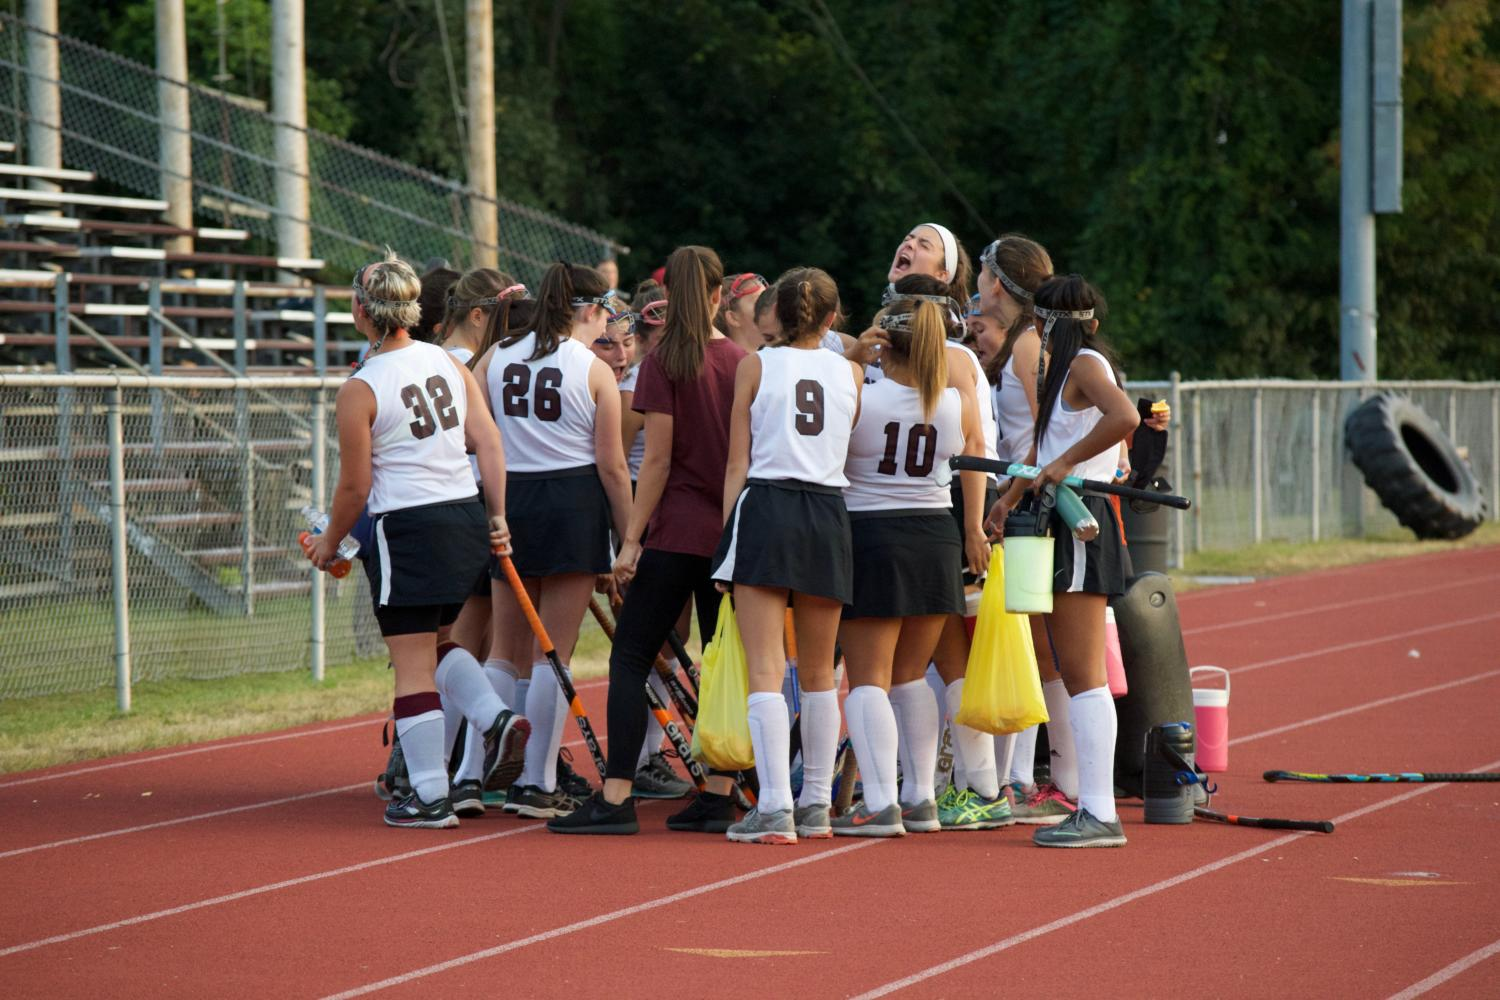 Some players from the WHHS Field Hockey Team huddling together.